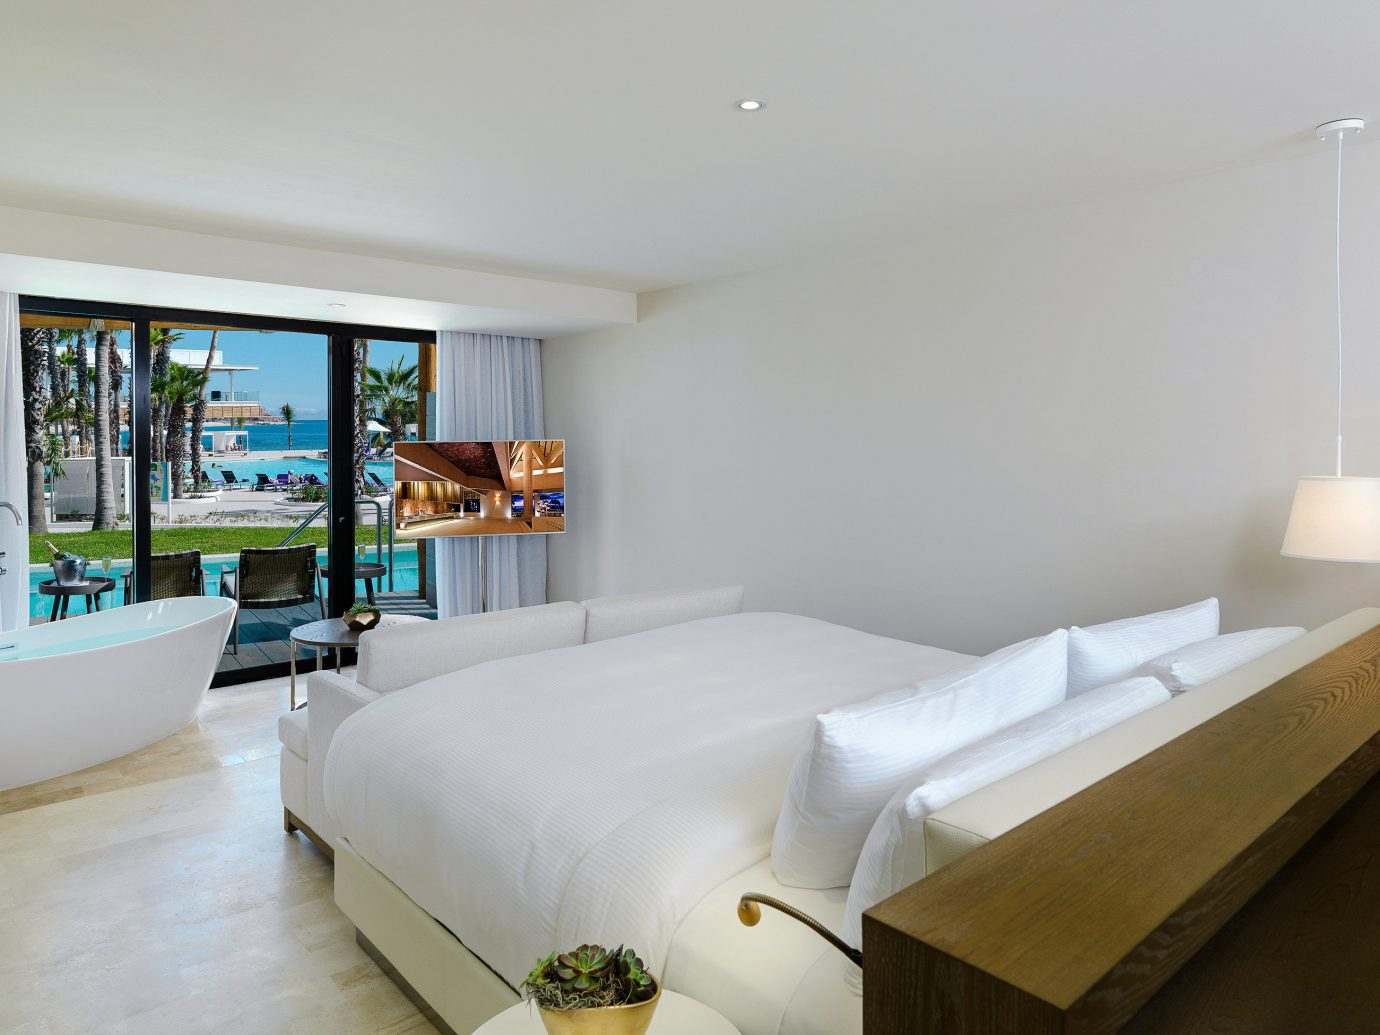 Bedroom at Paradisus Los Cabos